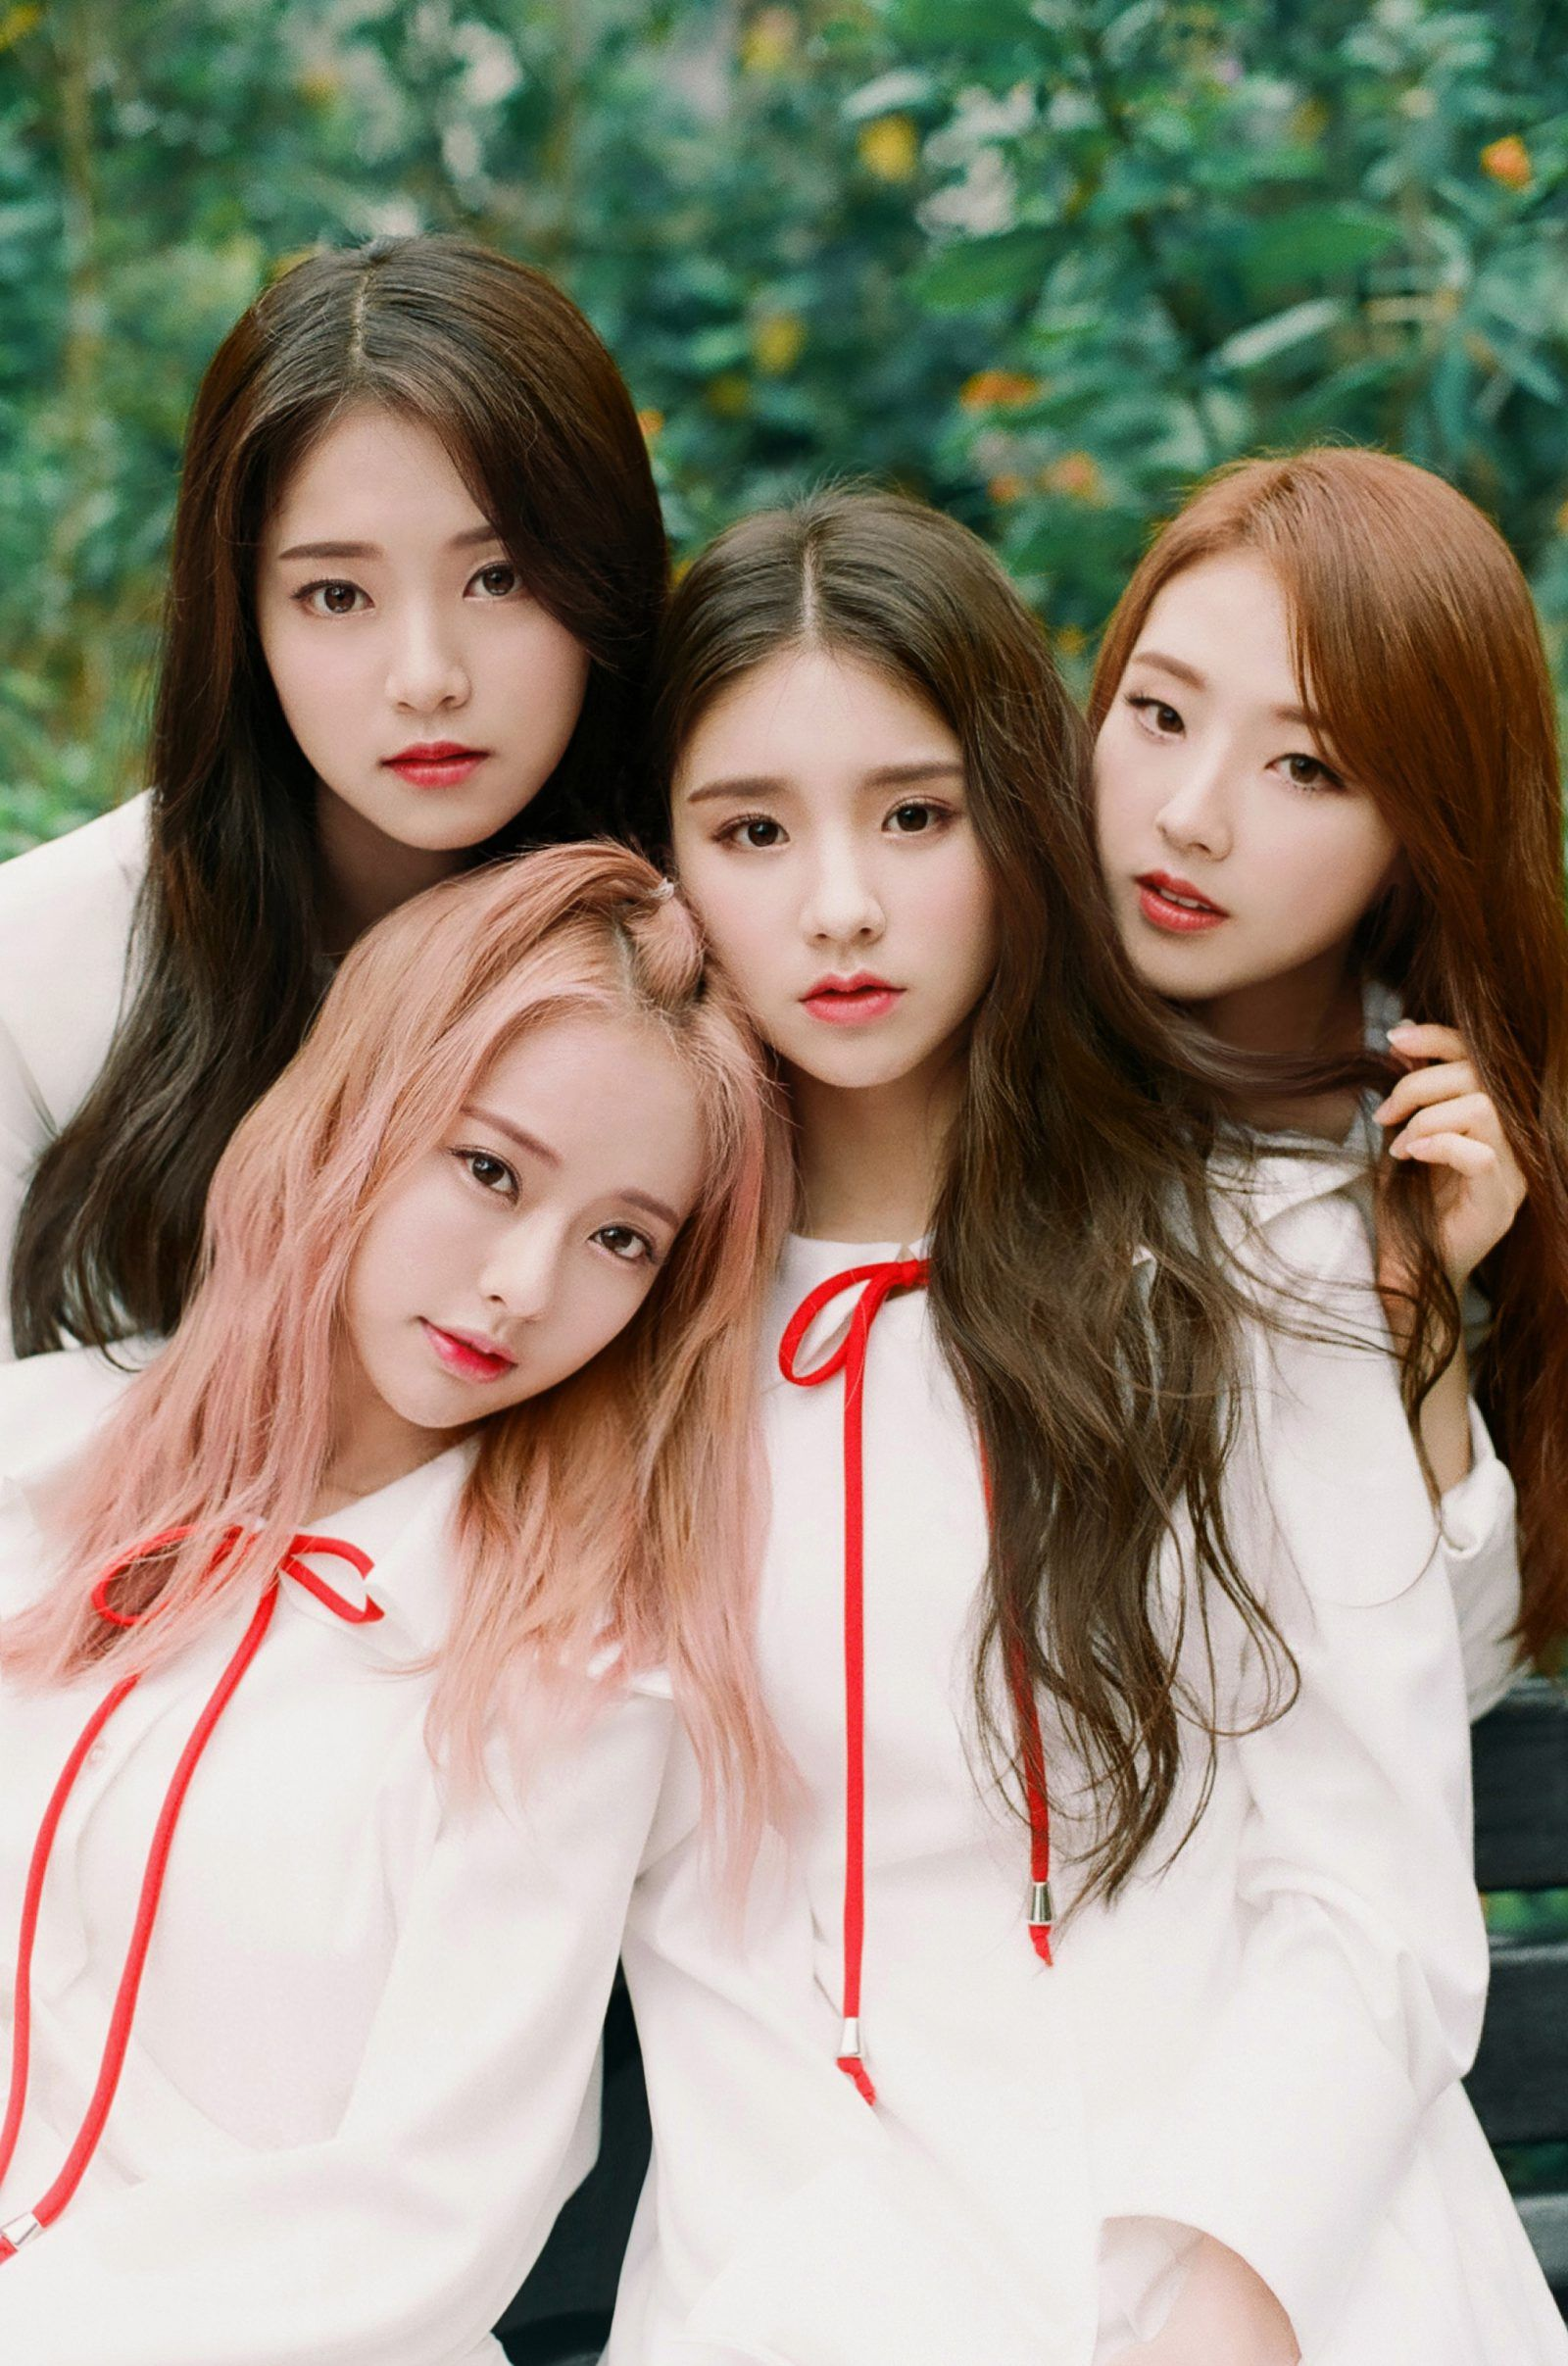 All The Girls Standing In The Line For The Bathroom: Upcoming Girl Group LOONA (LOOΠΔ) Might Just Be The Next